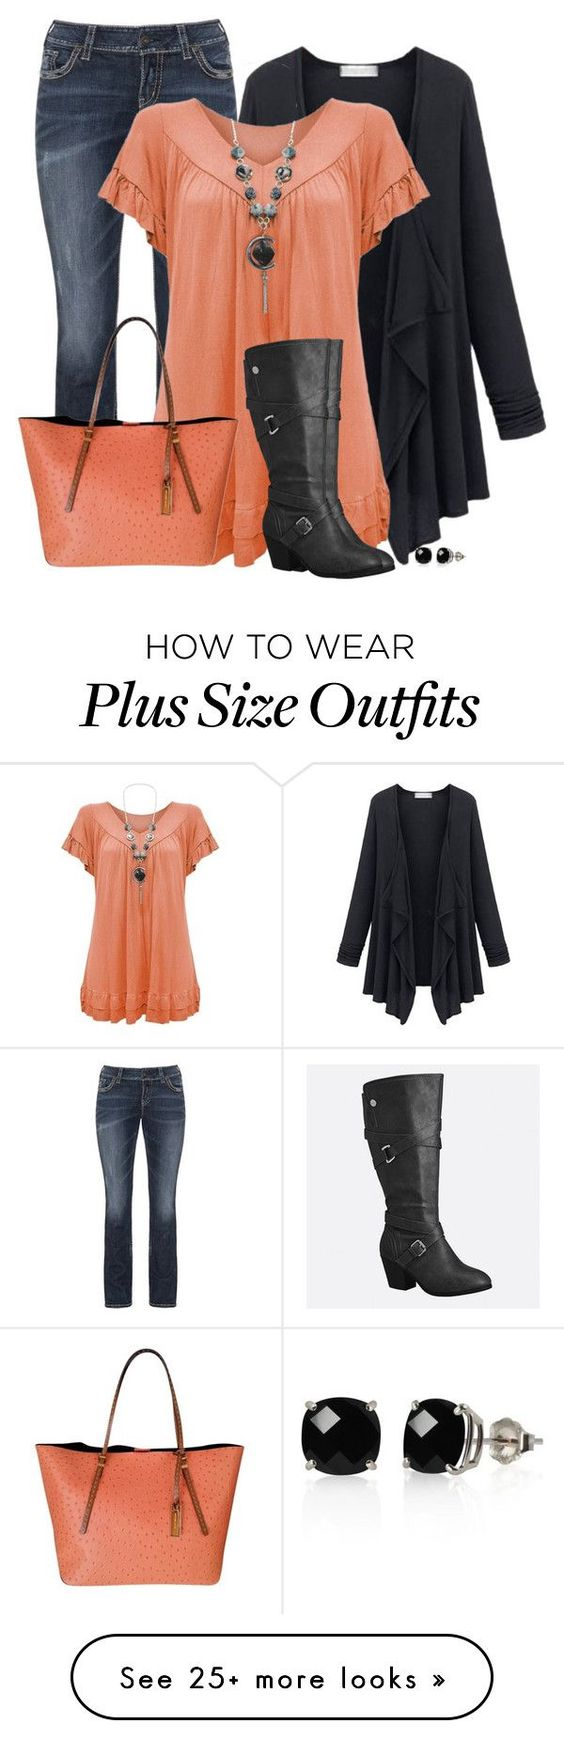 """""""Plus Size"""" by sherbear1974 on Polyvore featuring Silver Jeans Co., Avenue, Michael Kors and Belk & Co. More"""